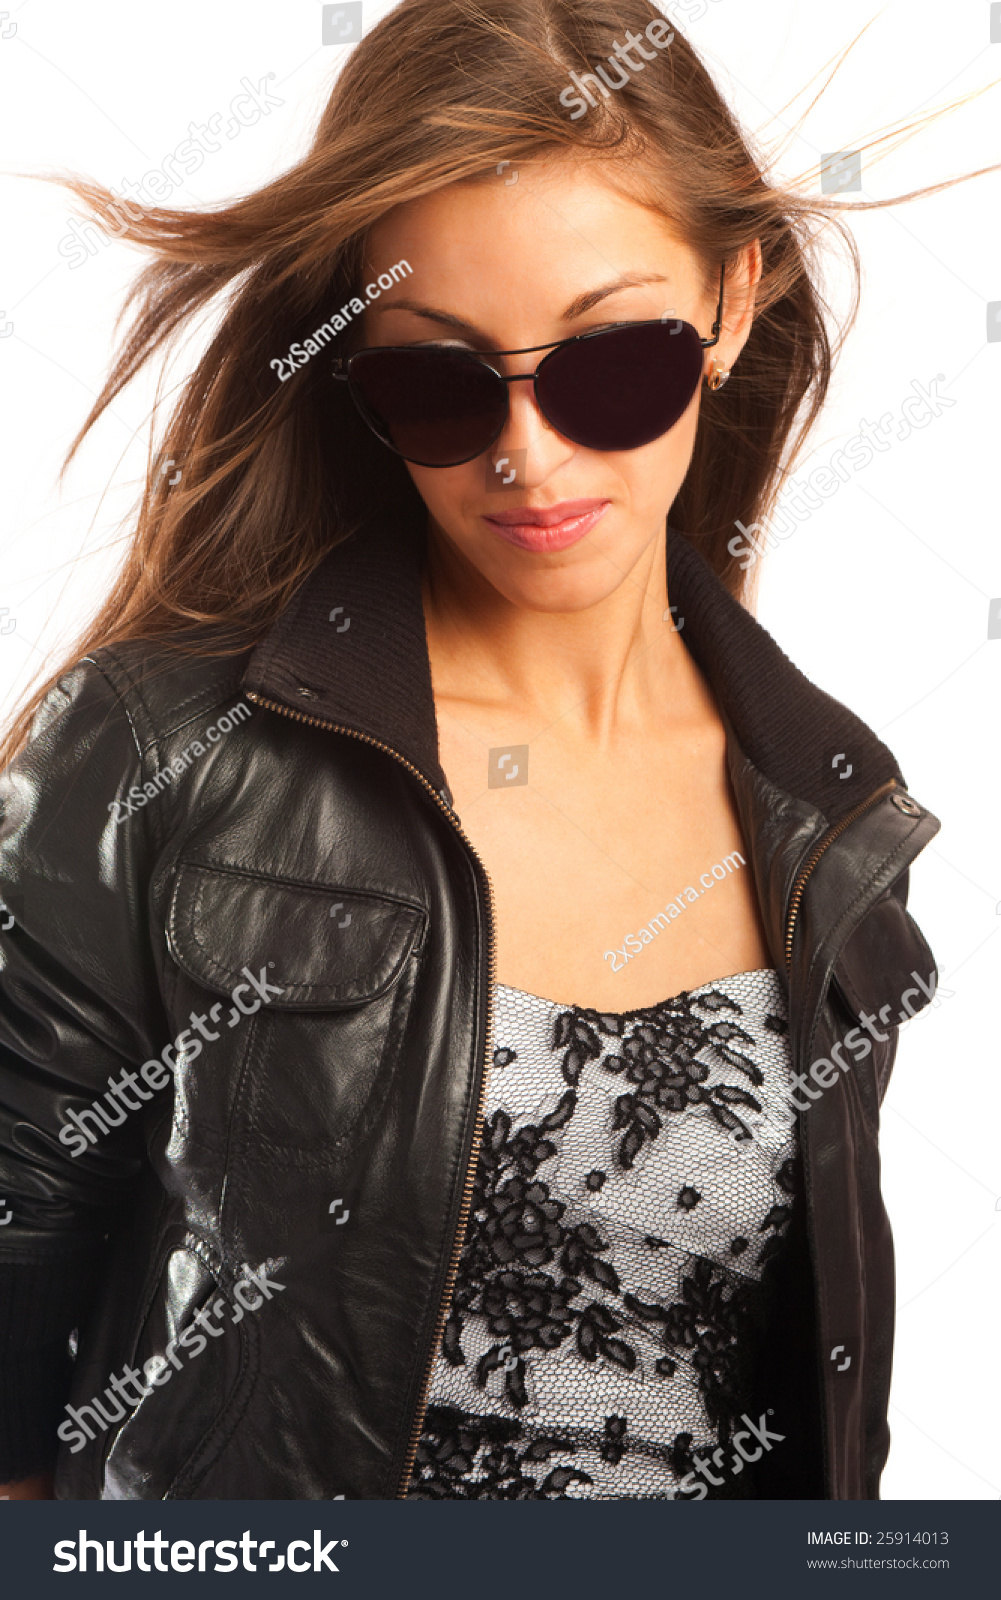 Leather jacket black glasses